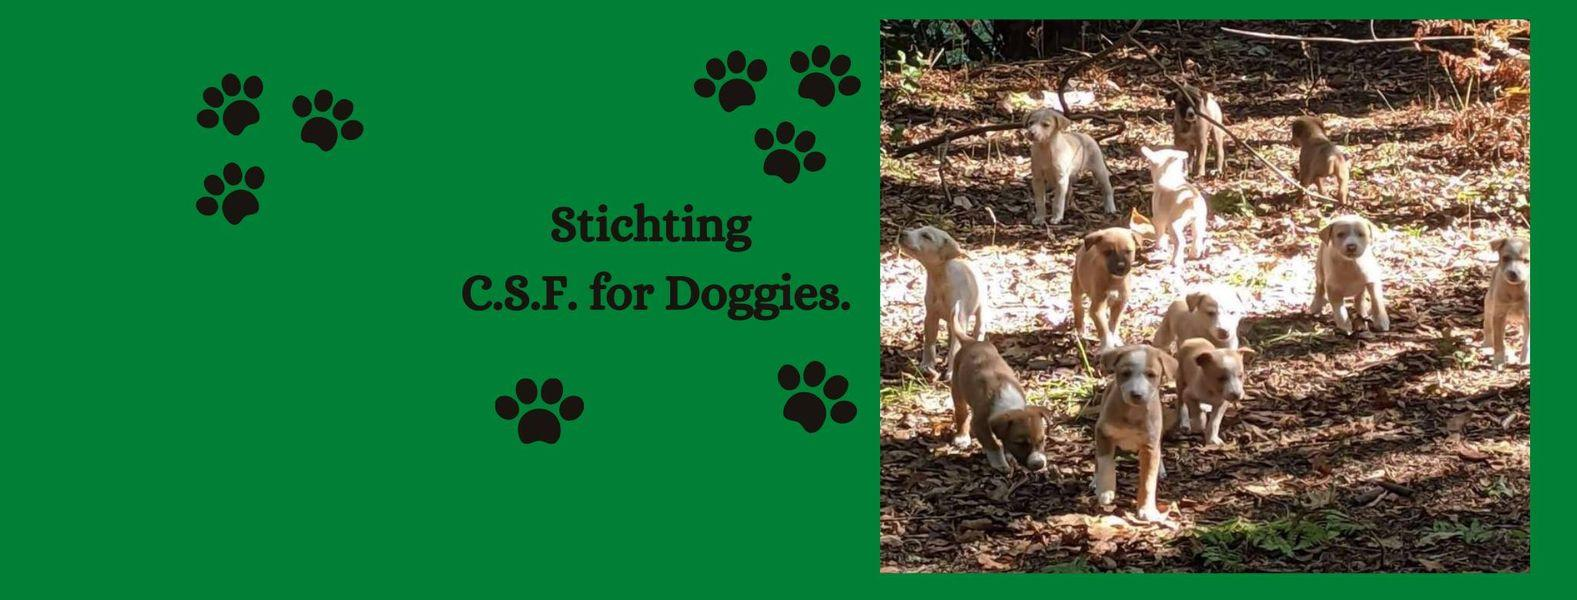 STICHTING C.S.F. FOR DOGGIES